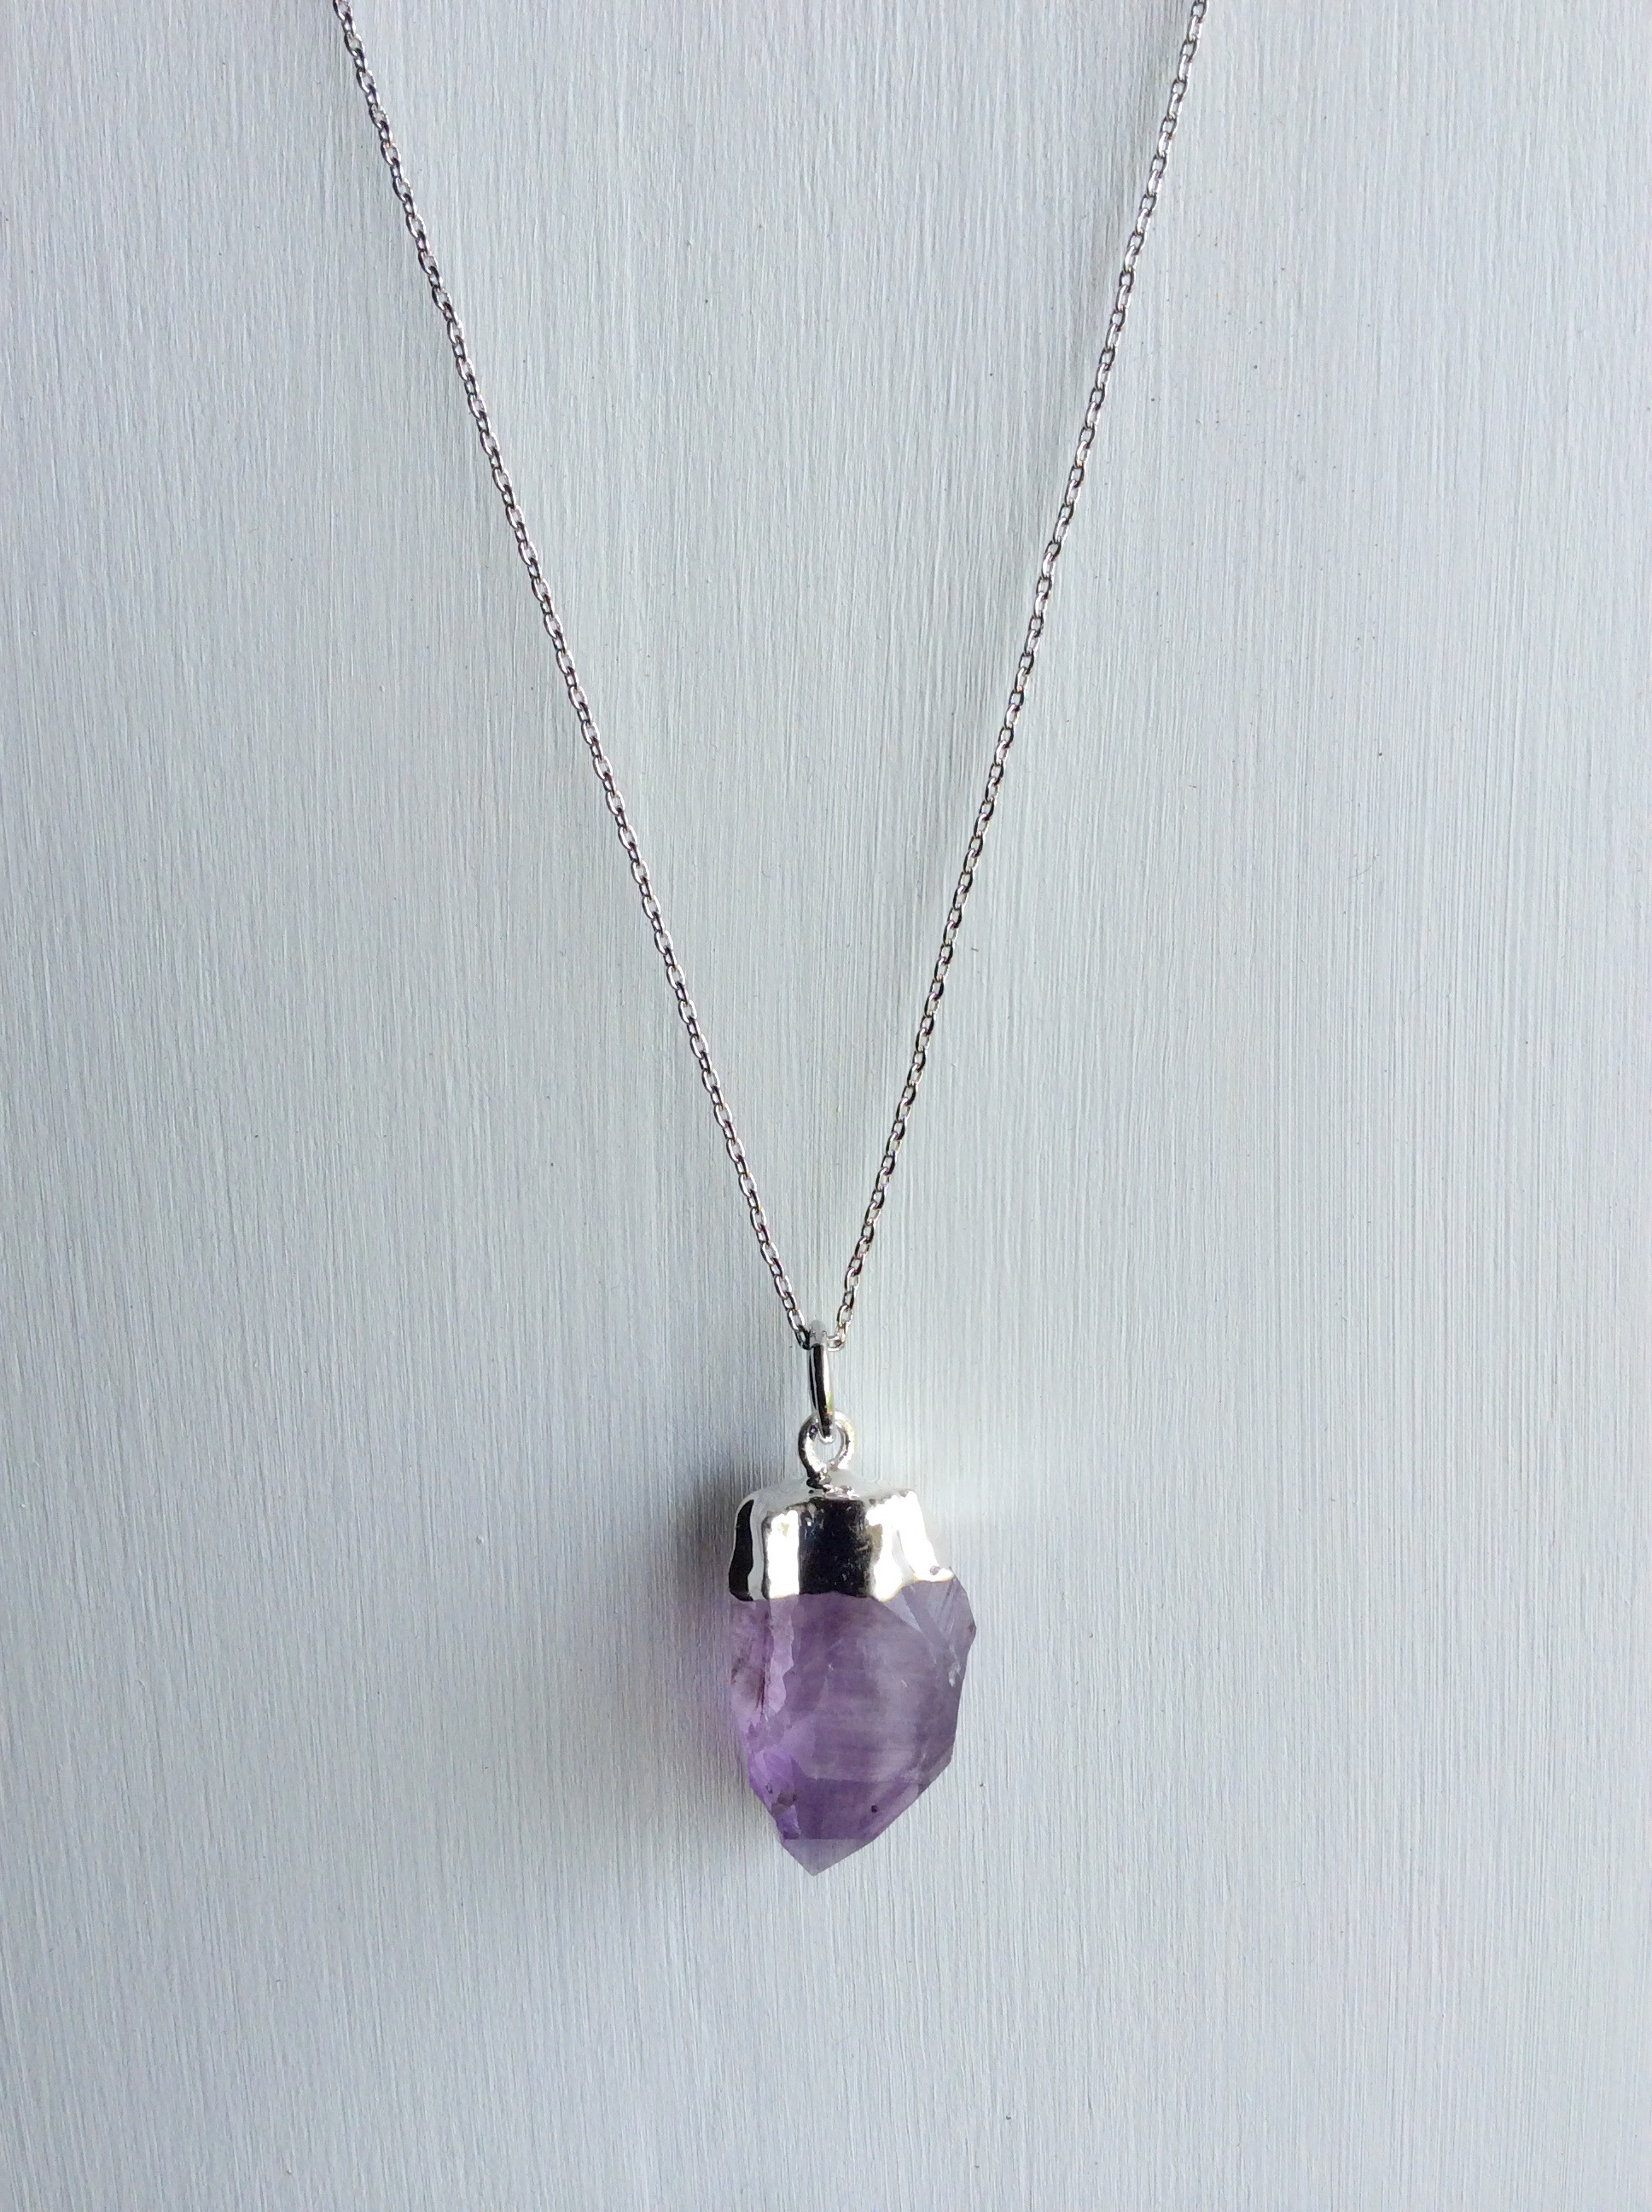 amethyst necklace jewellery designs cushion pendant drop product jewelry